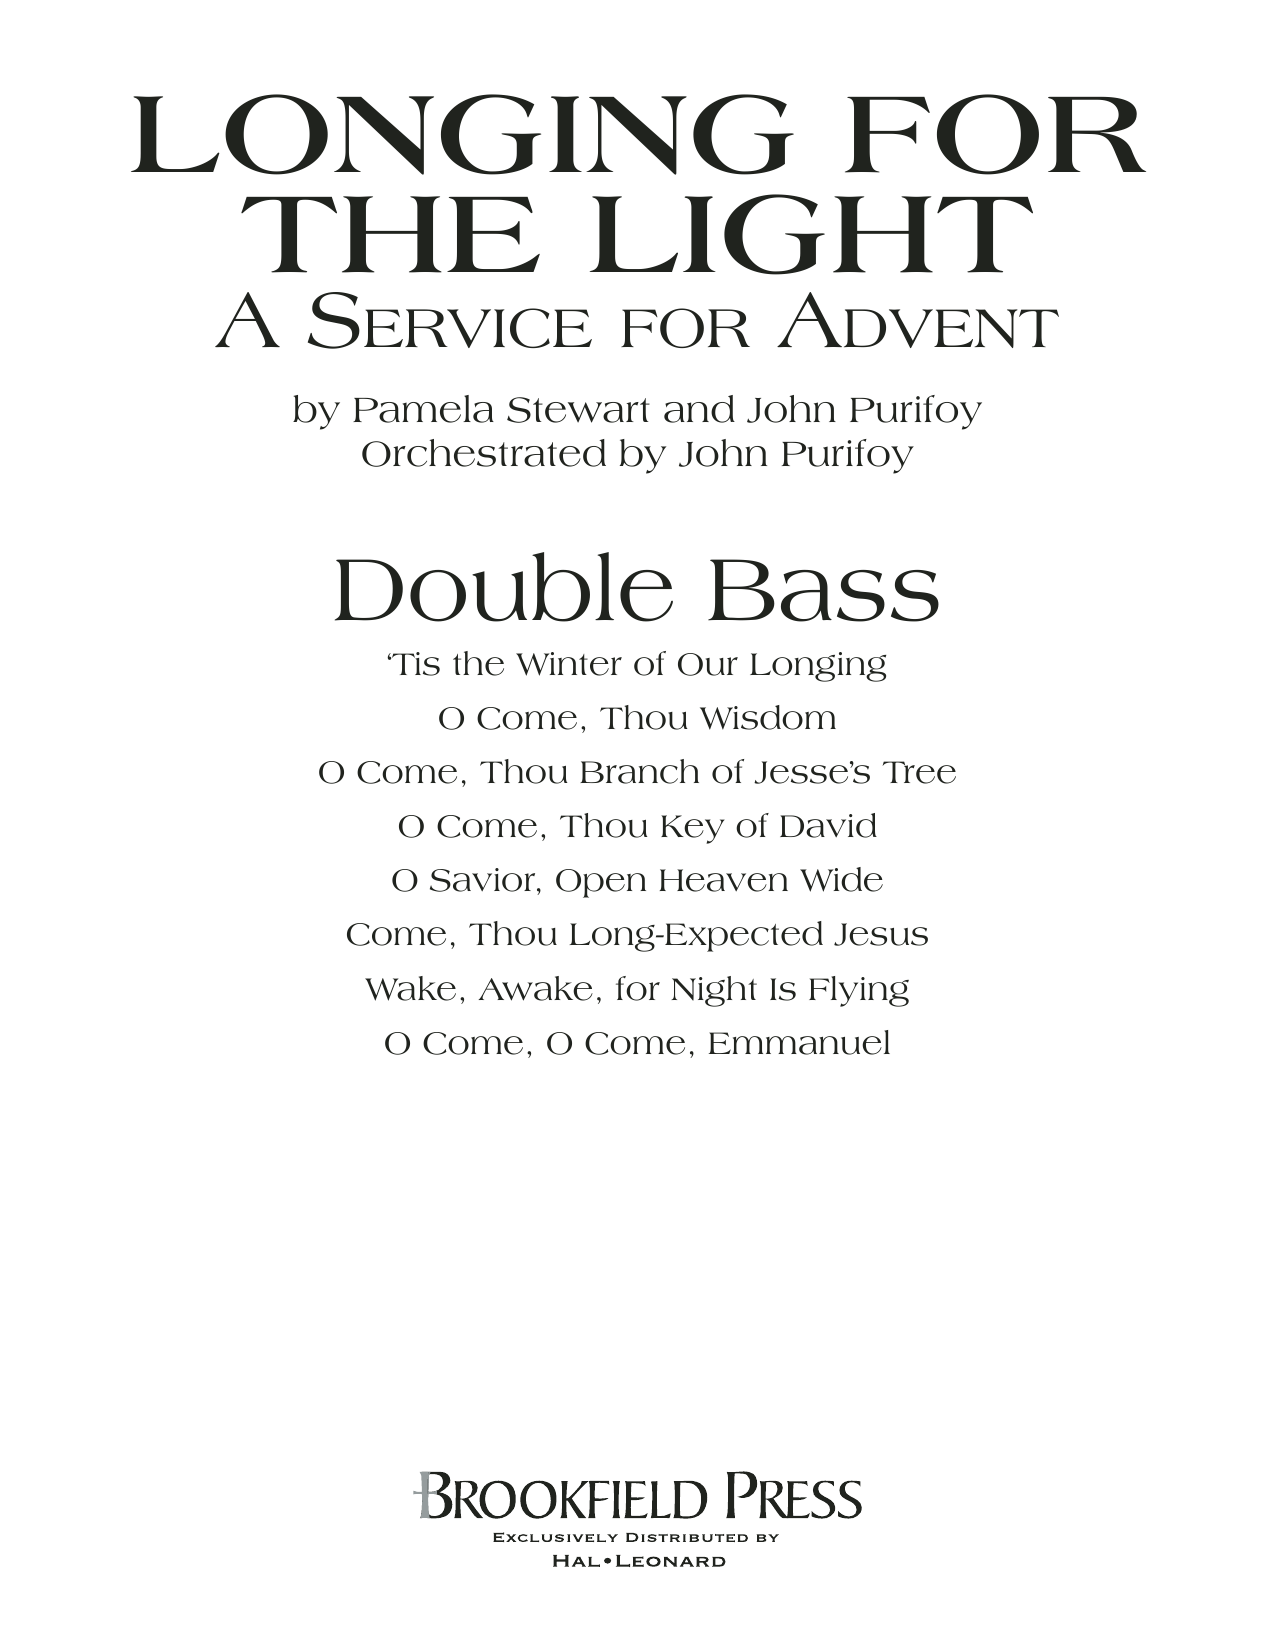 Longing For The Light (A Service For Advent) - Double Bass Sheet Music